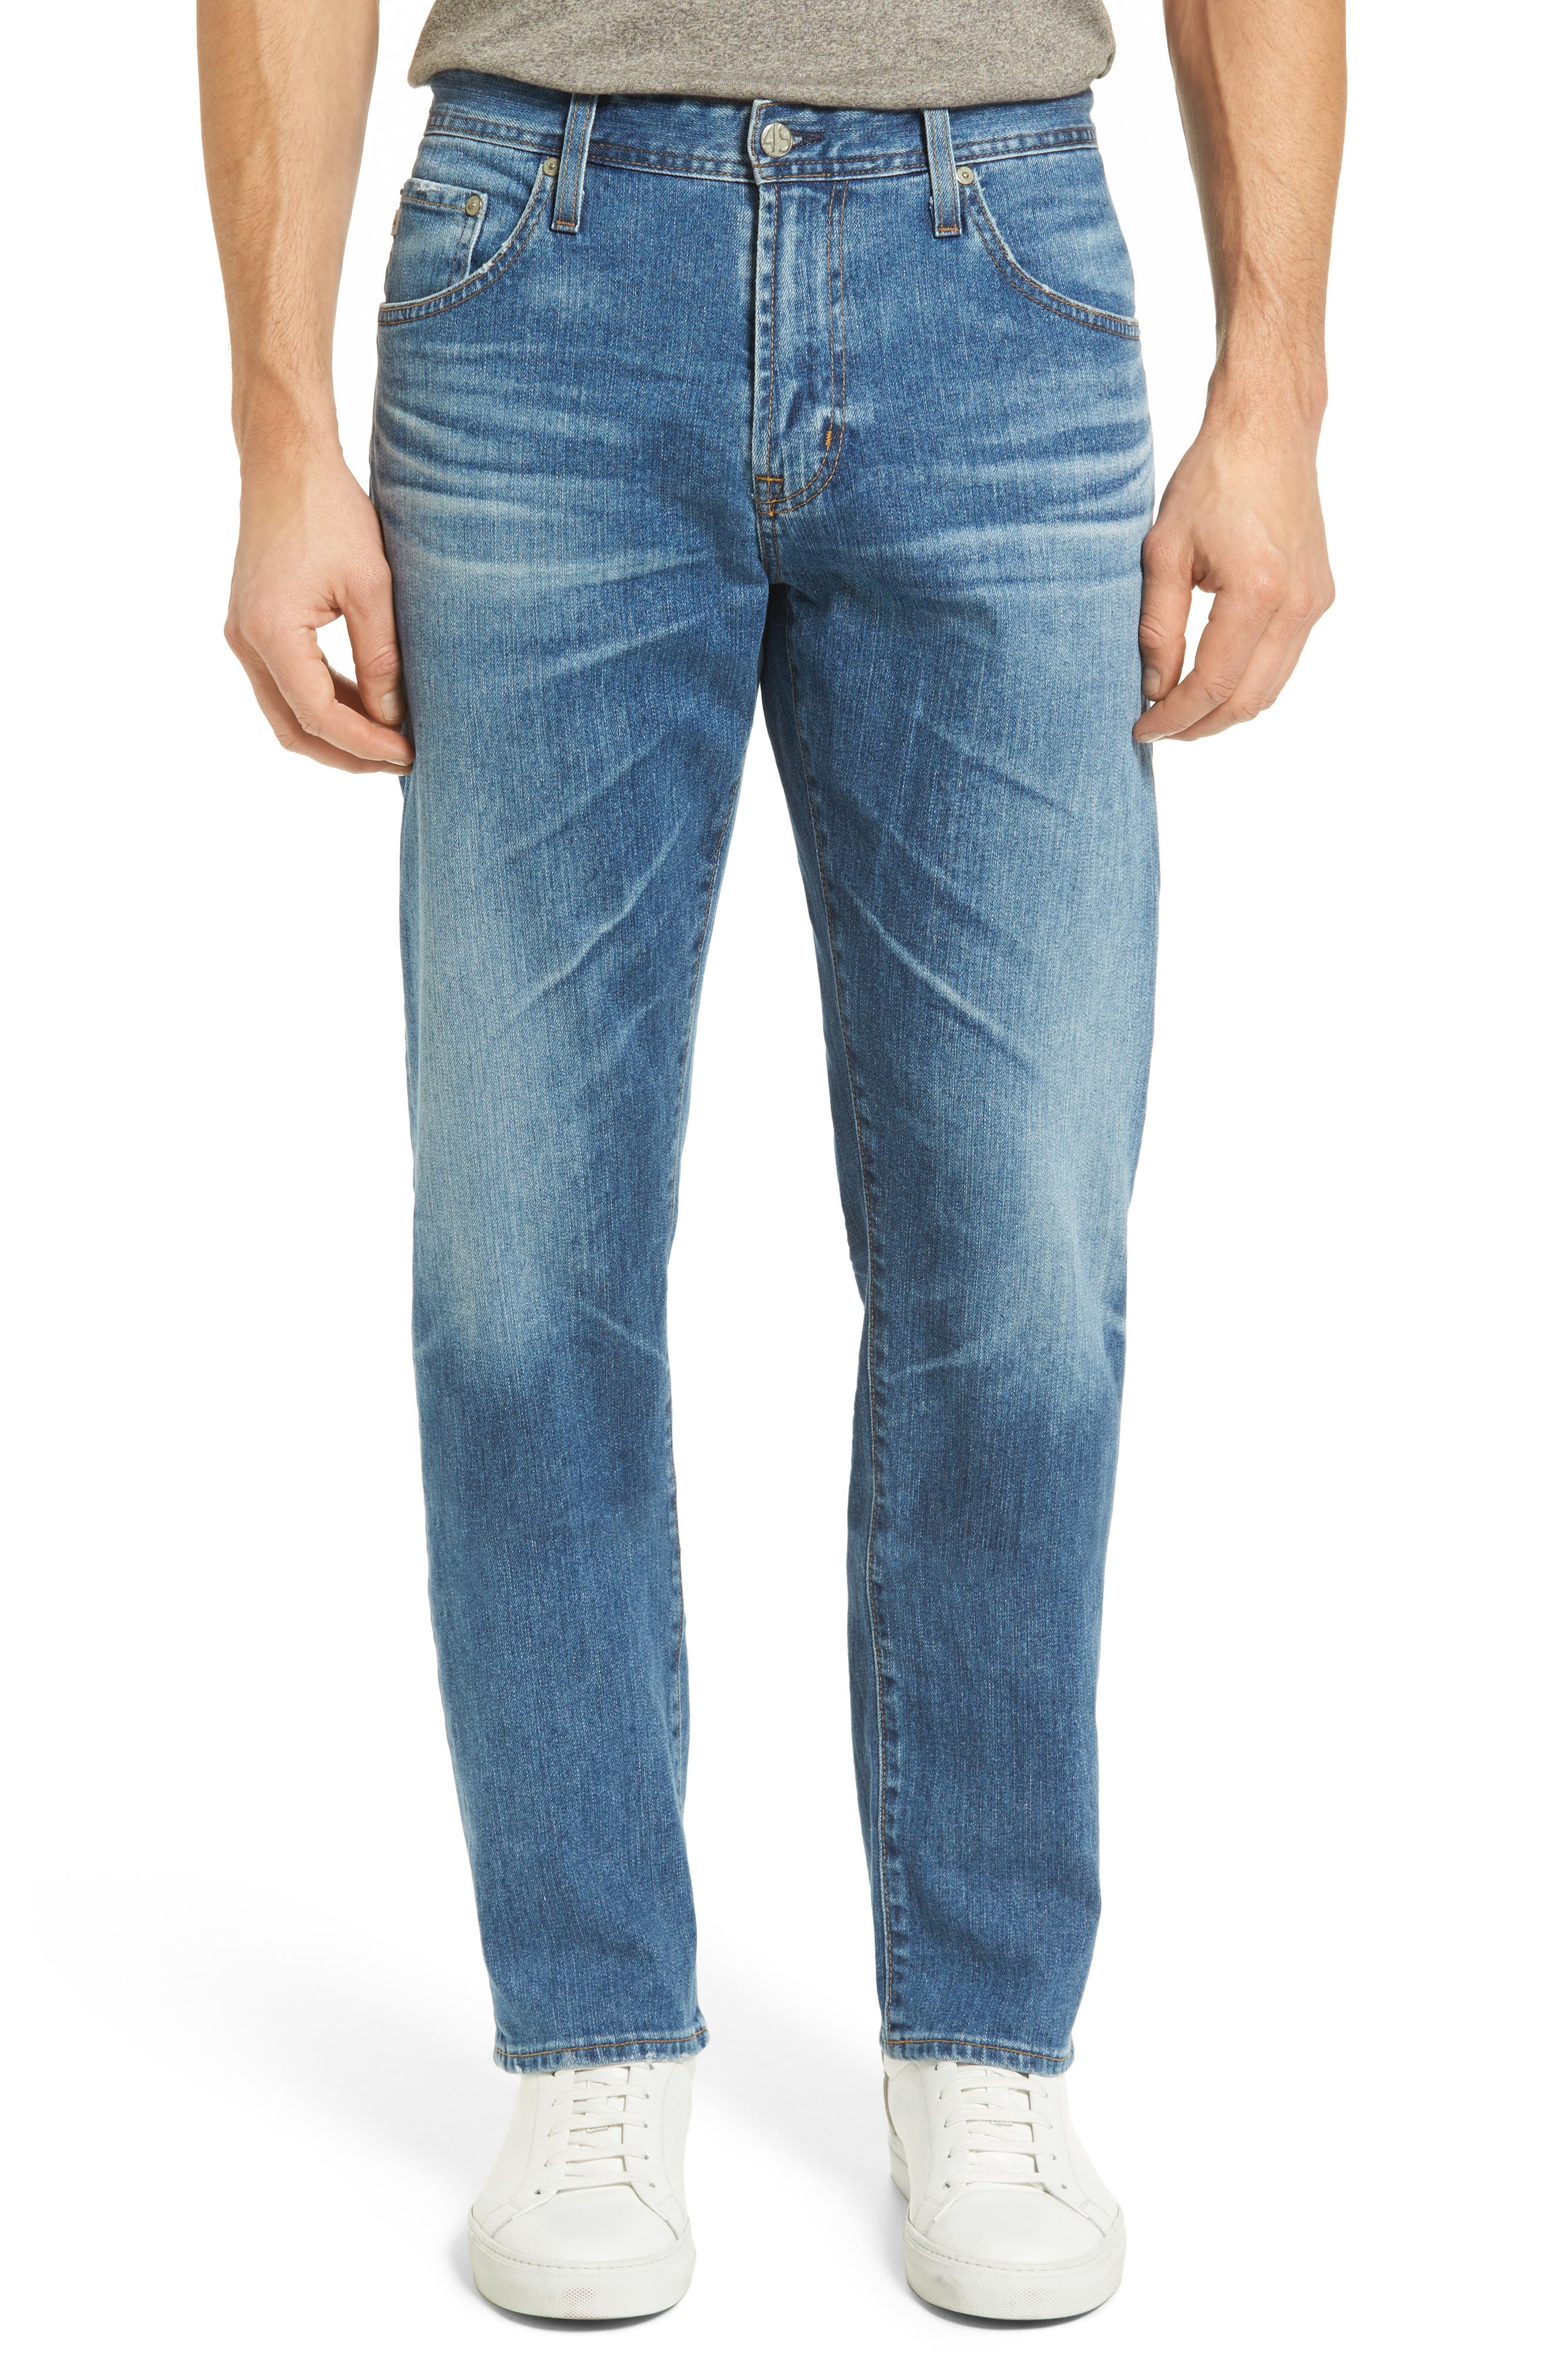 Ives Straight Leg Jeans,                         Main,                         color, 16 Years Broken Ground